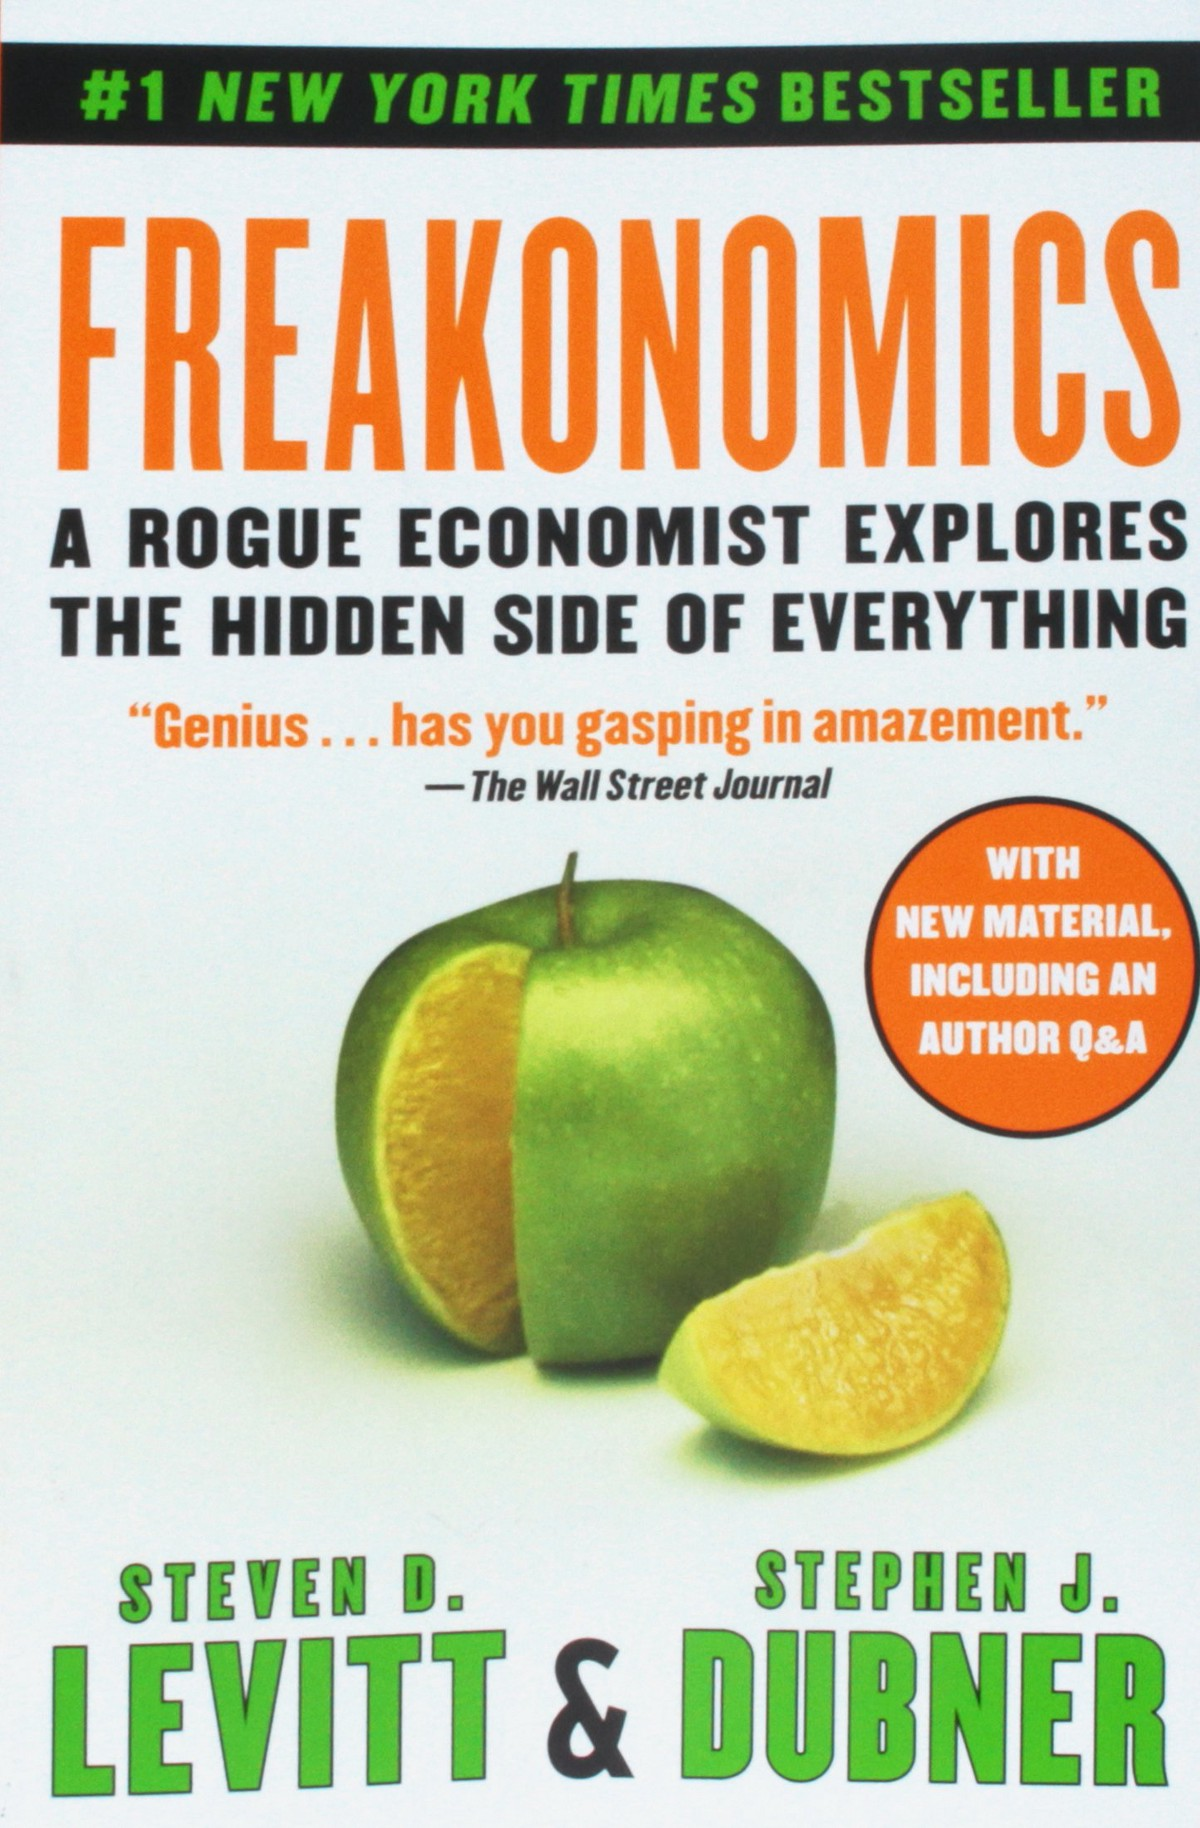 freakonomics real estate agents